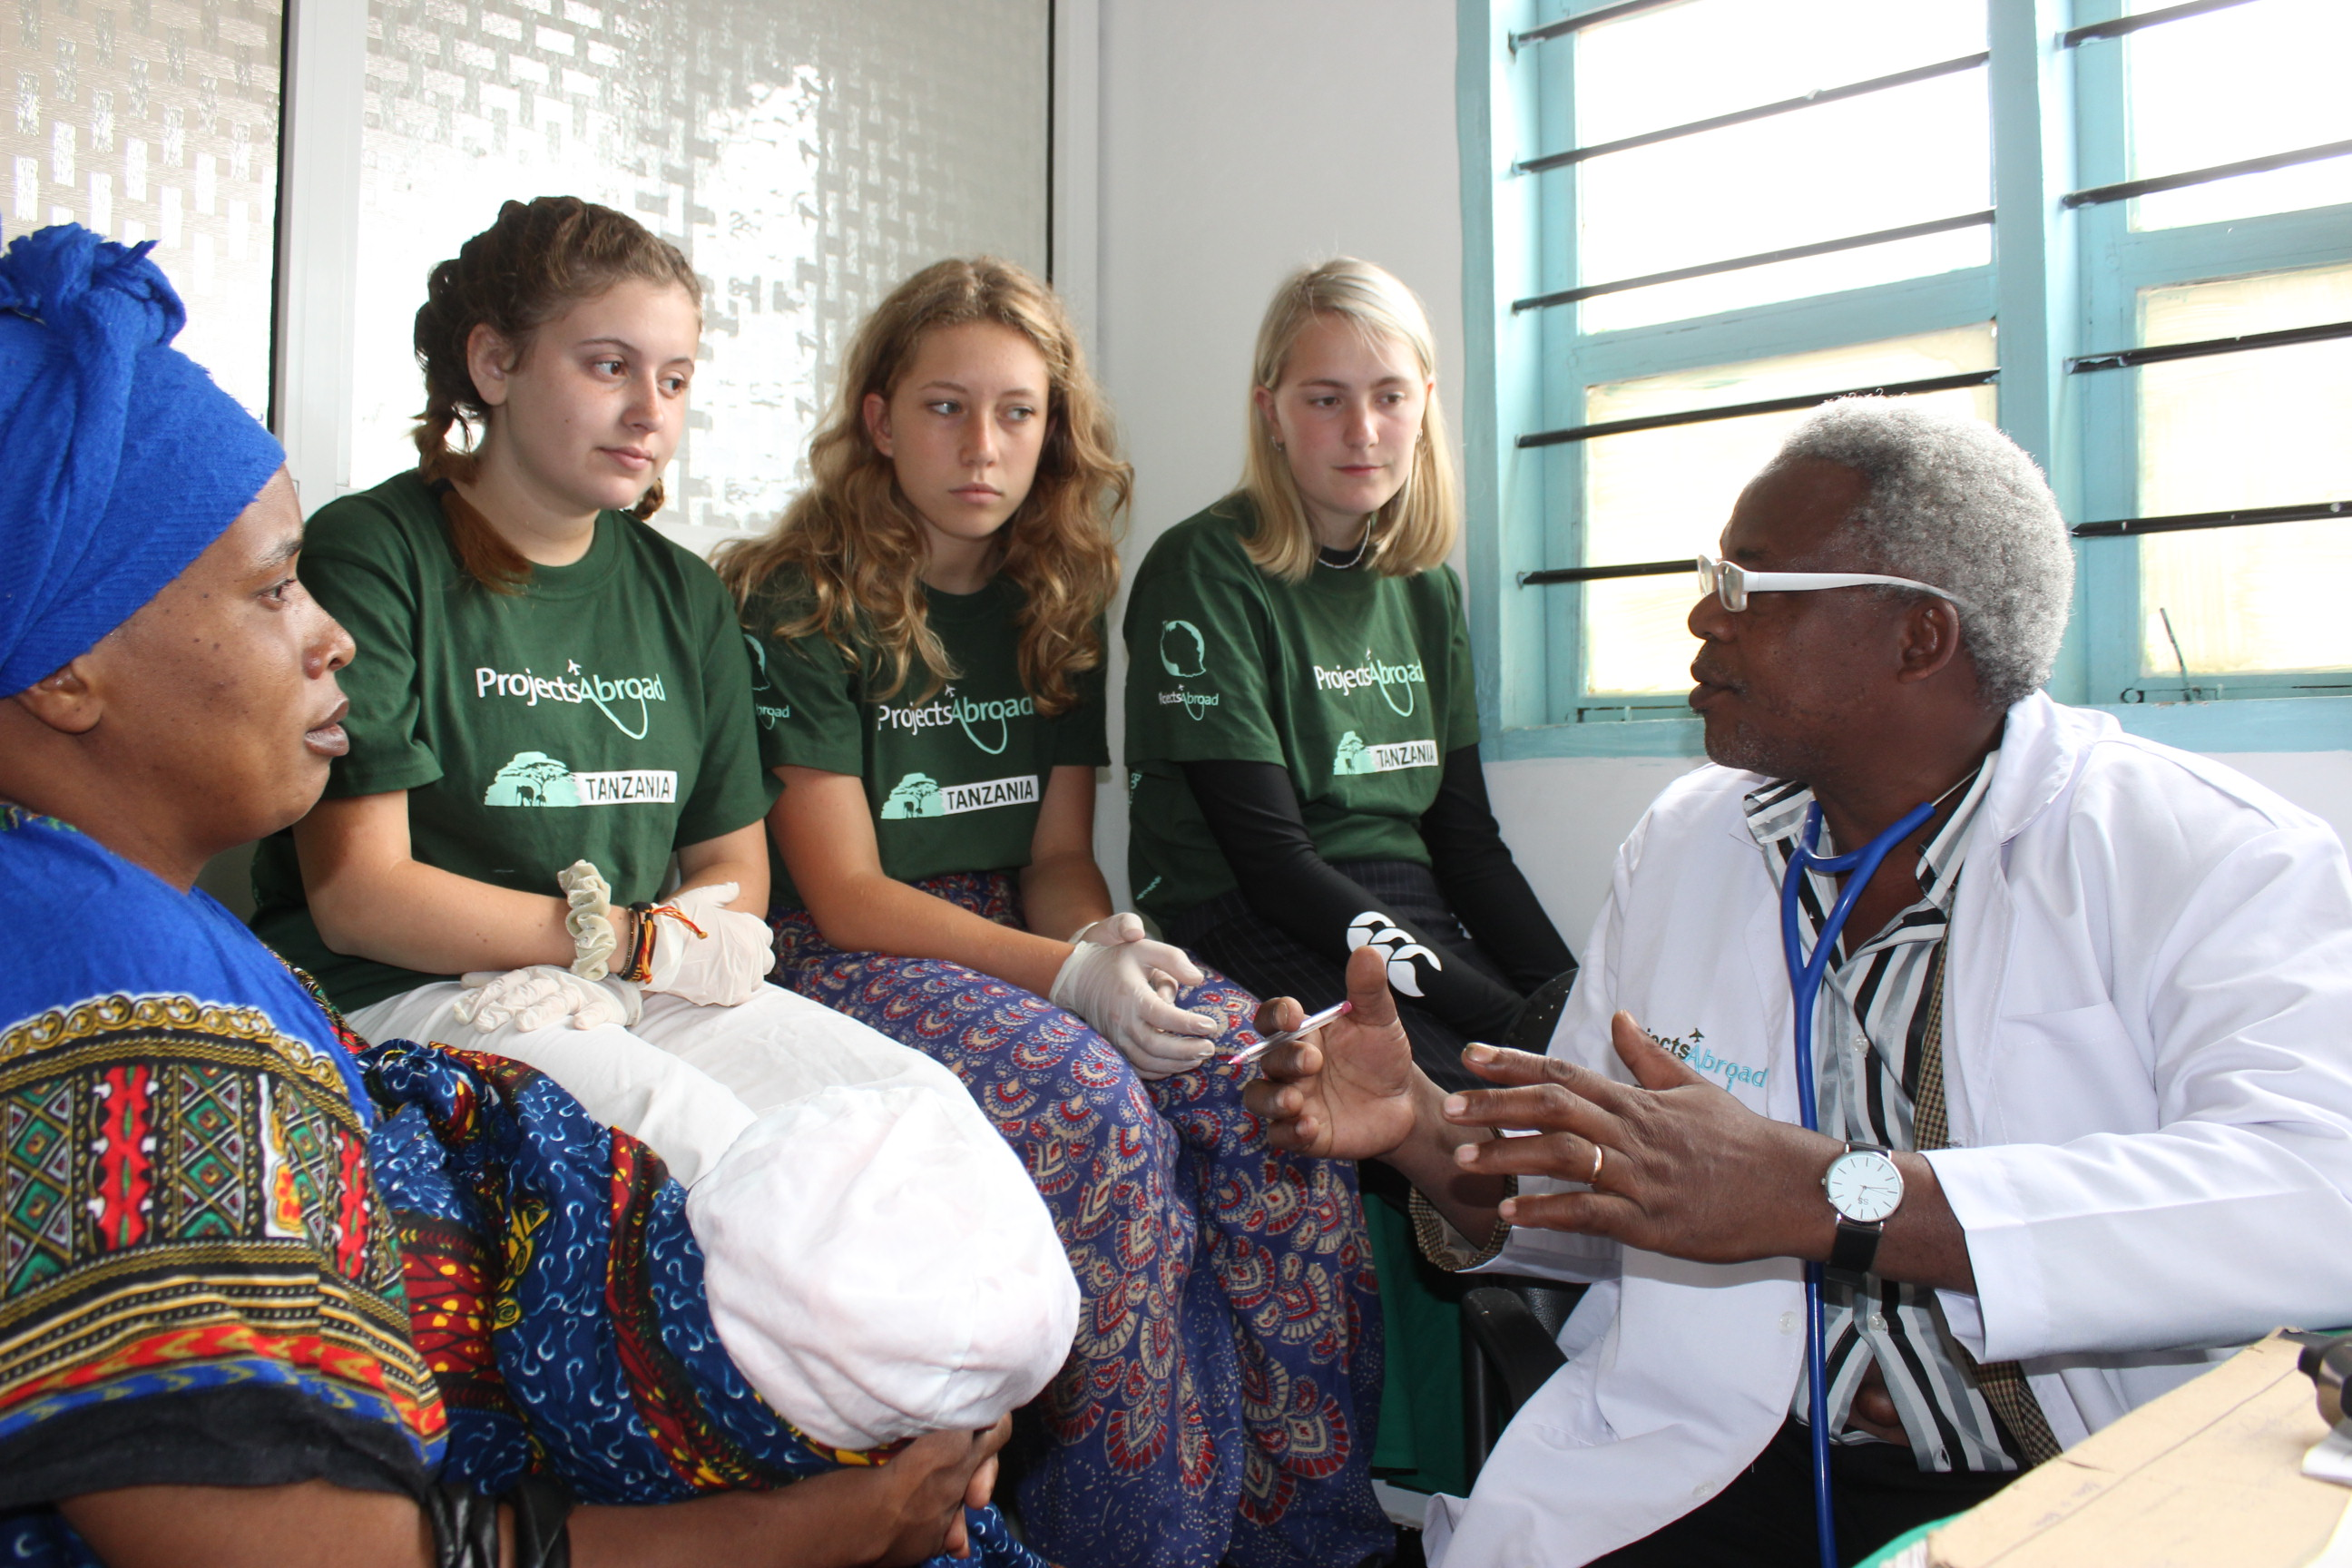 Summer Program - Health and Well Being | Projects Abroad:  Volunteering Abroad for High School Students